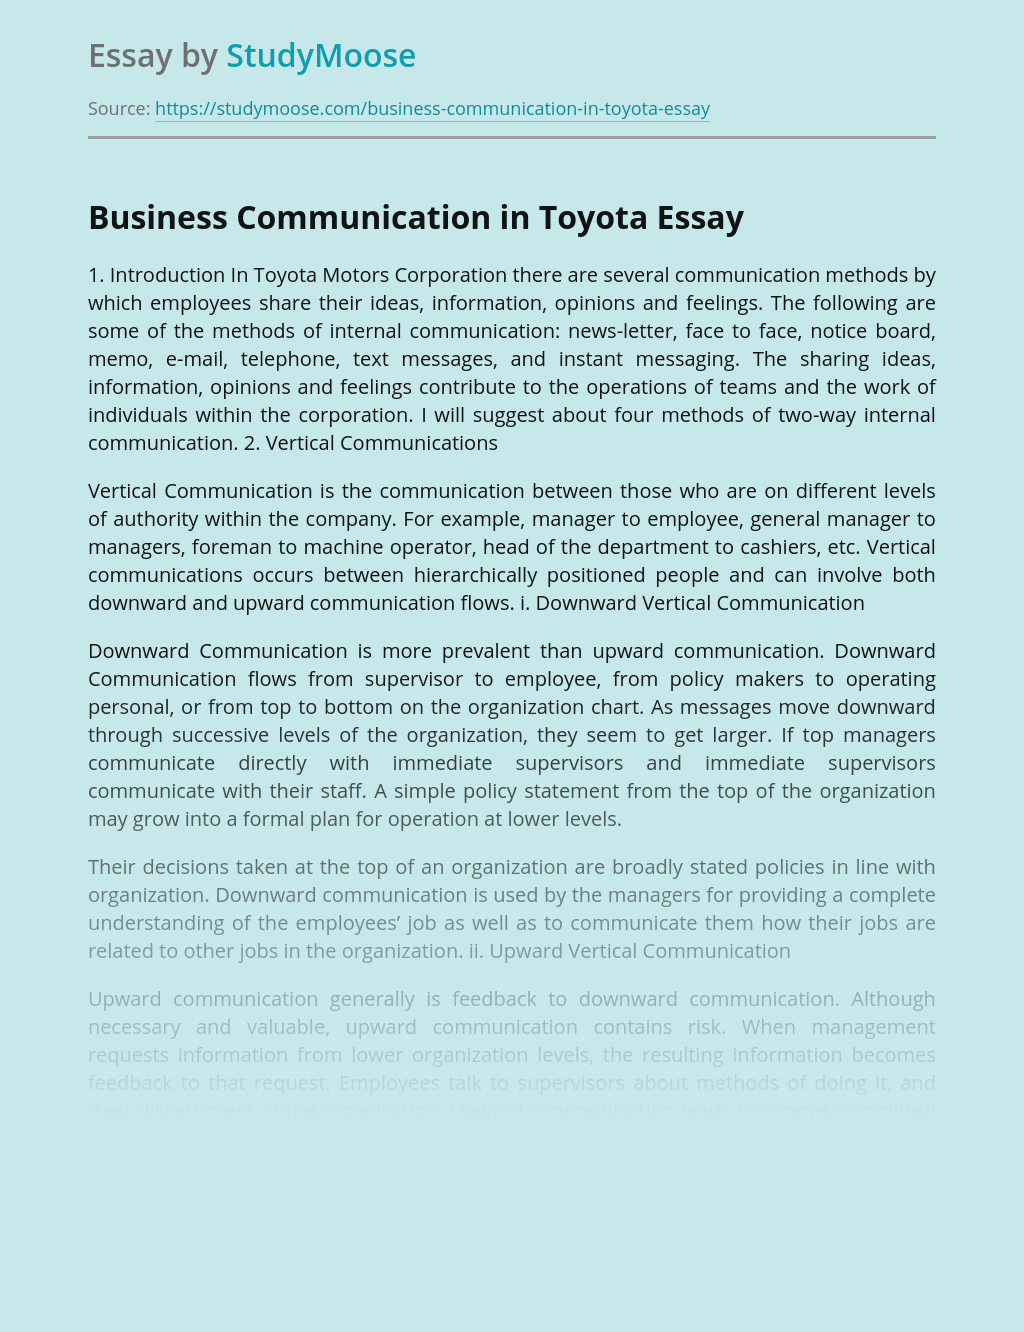 Business Communication in Toyota